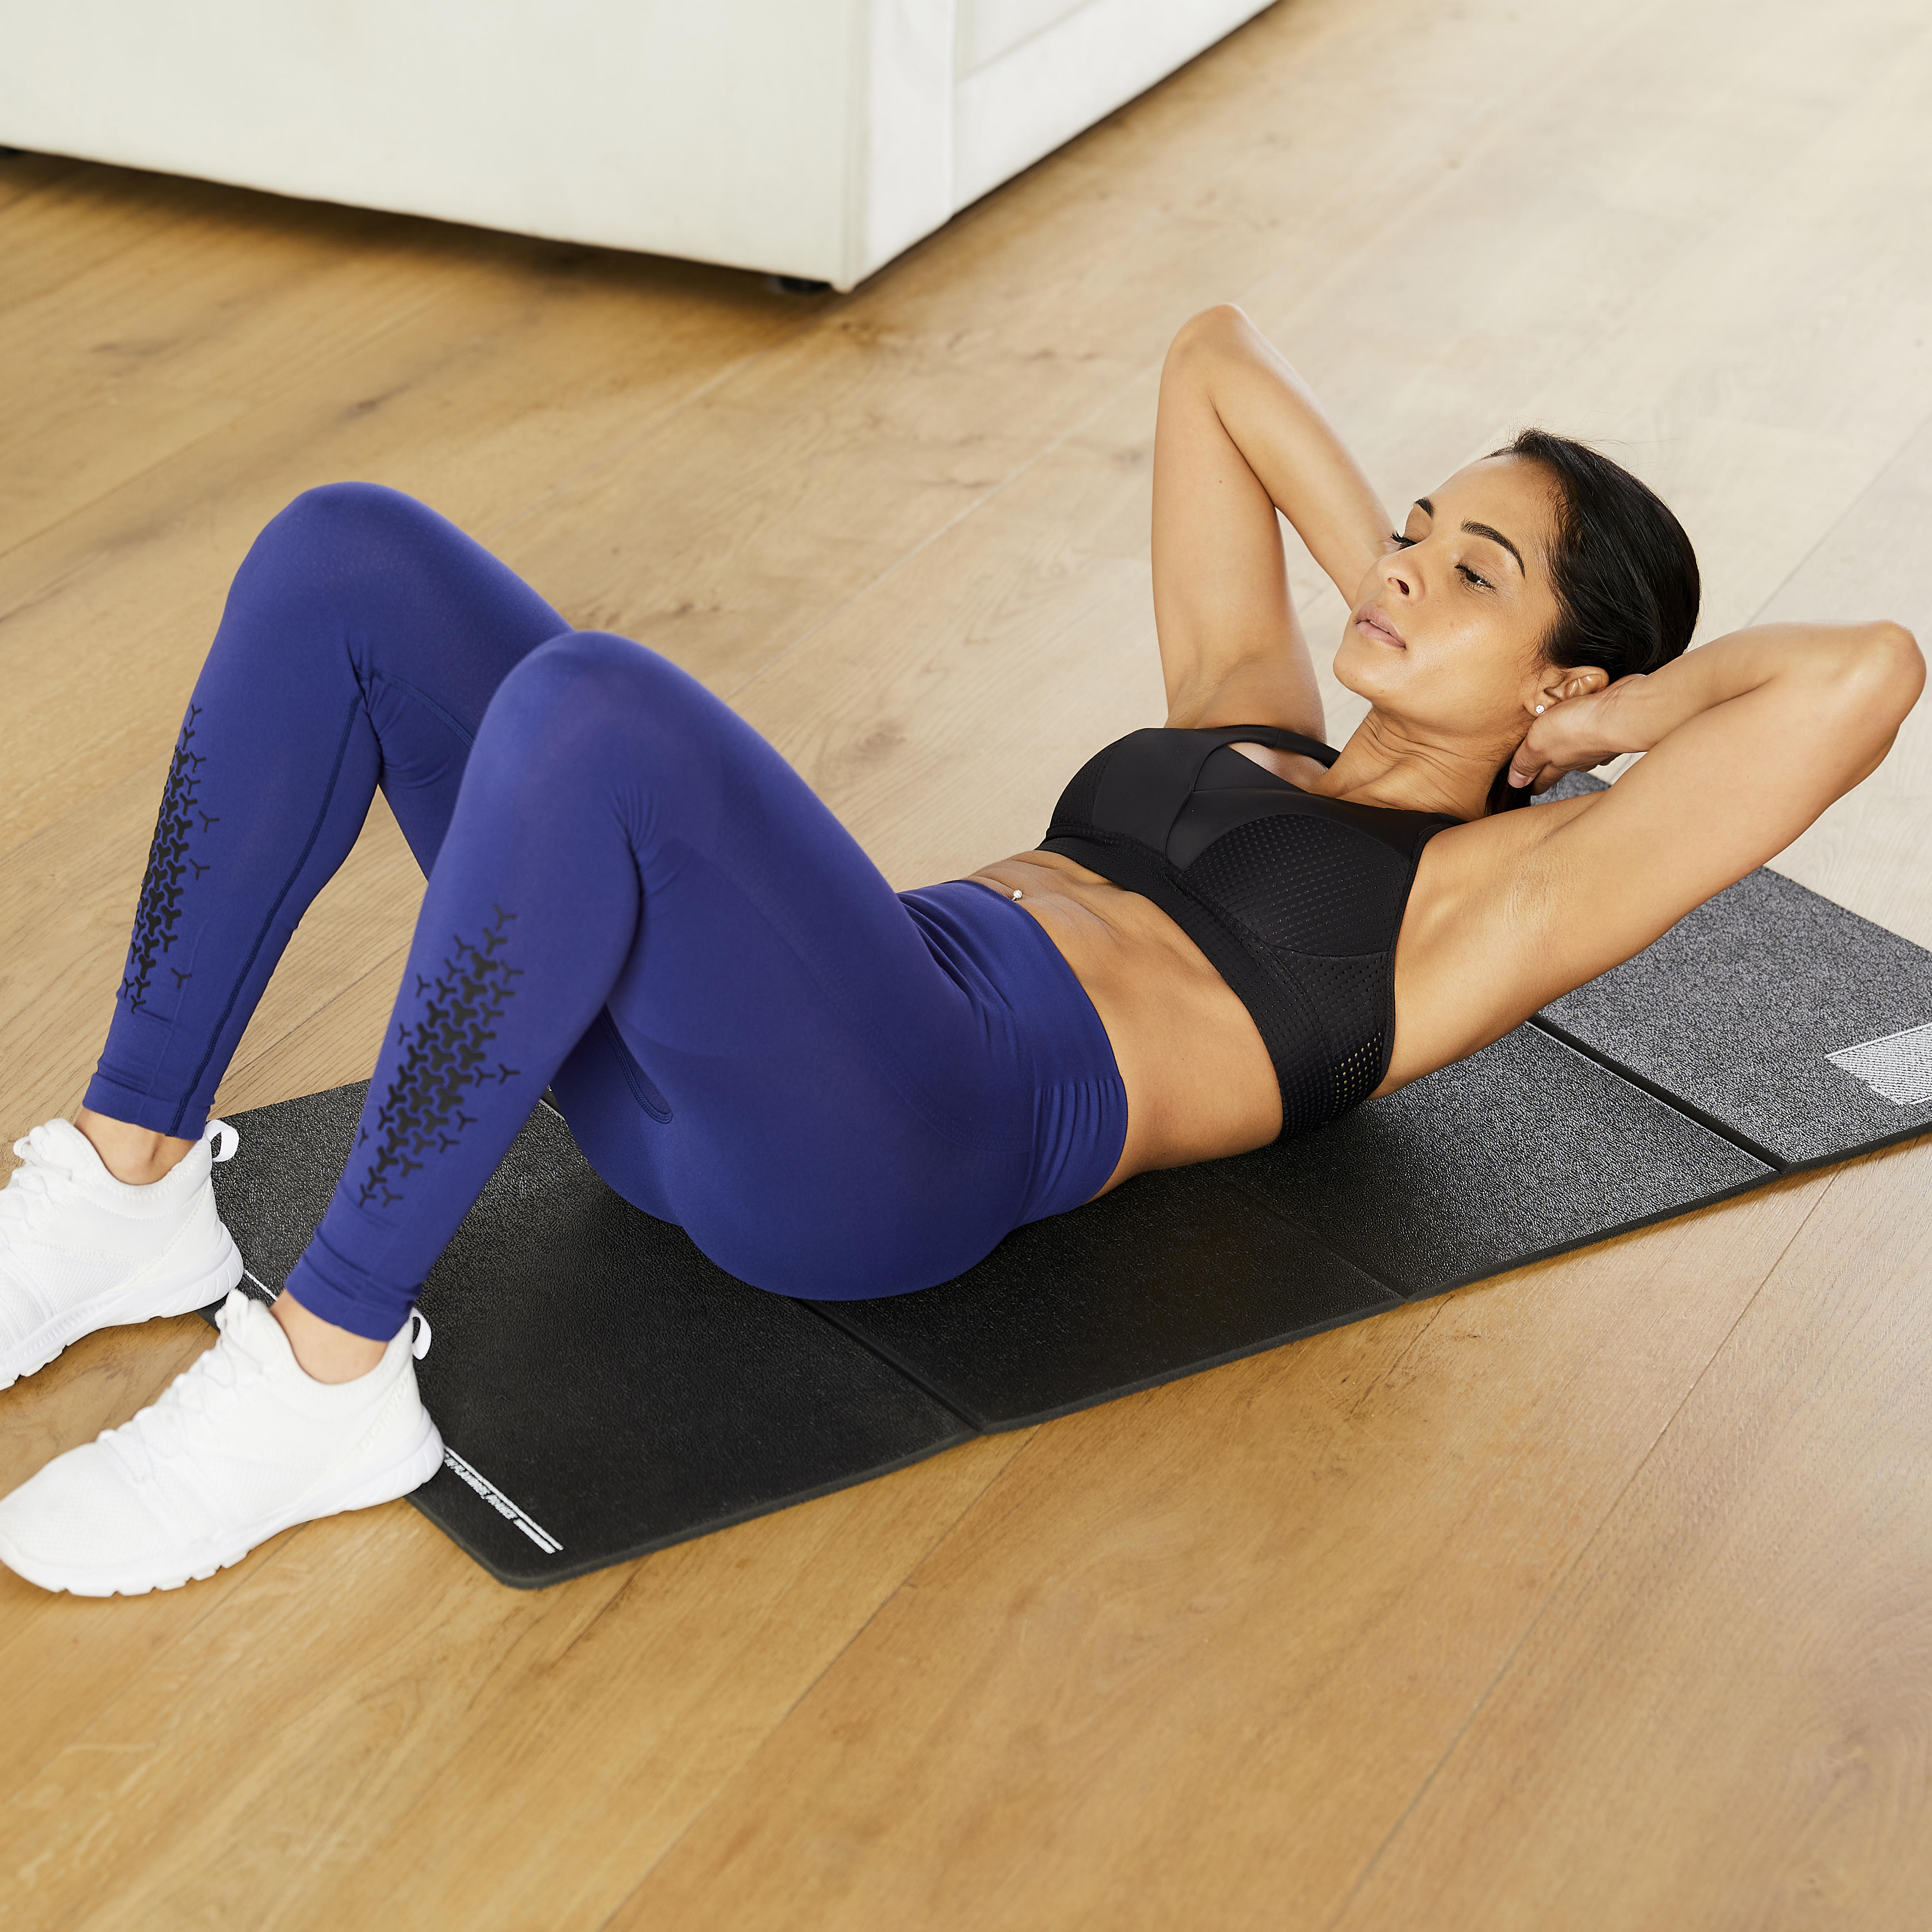 6 exercices simples pour muscler ses abdominaux